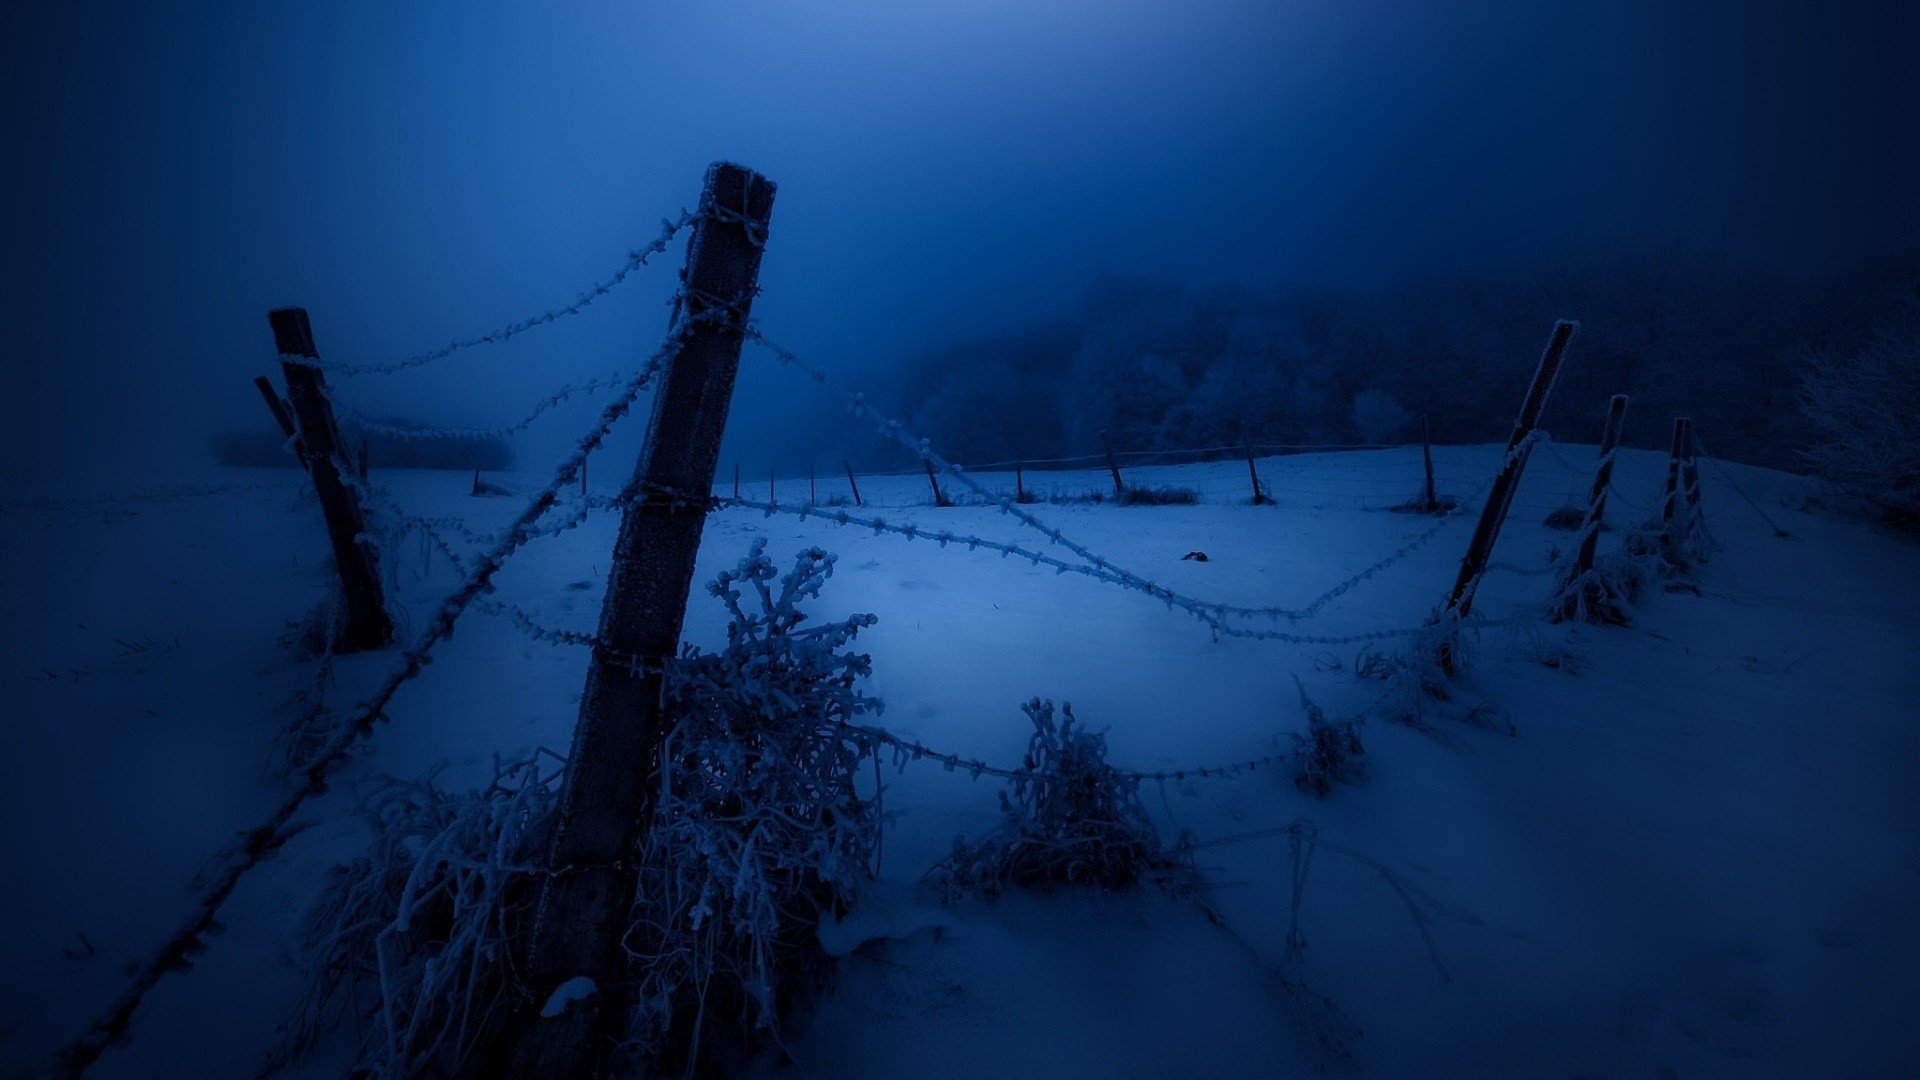 dark, Night, Fence, Cold, Snow, Winter, Landscape HD ...